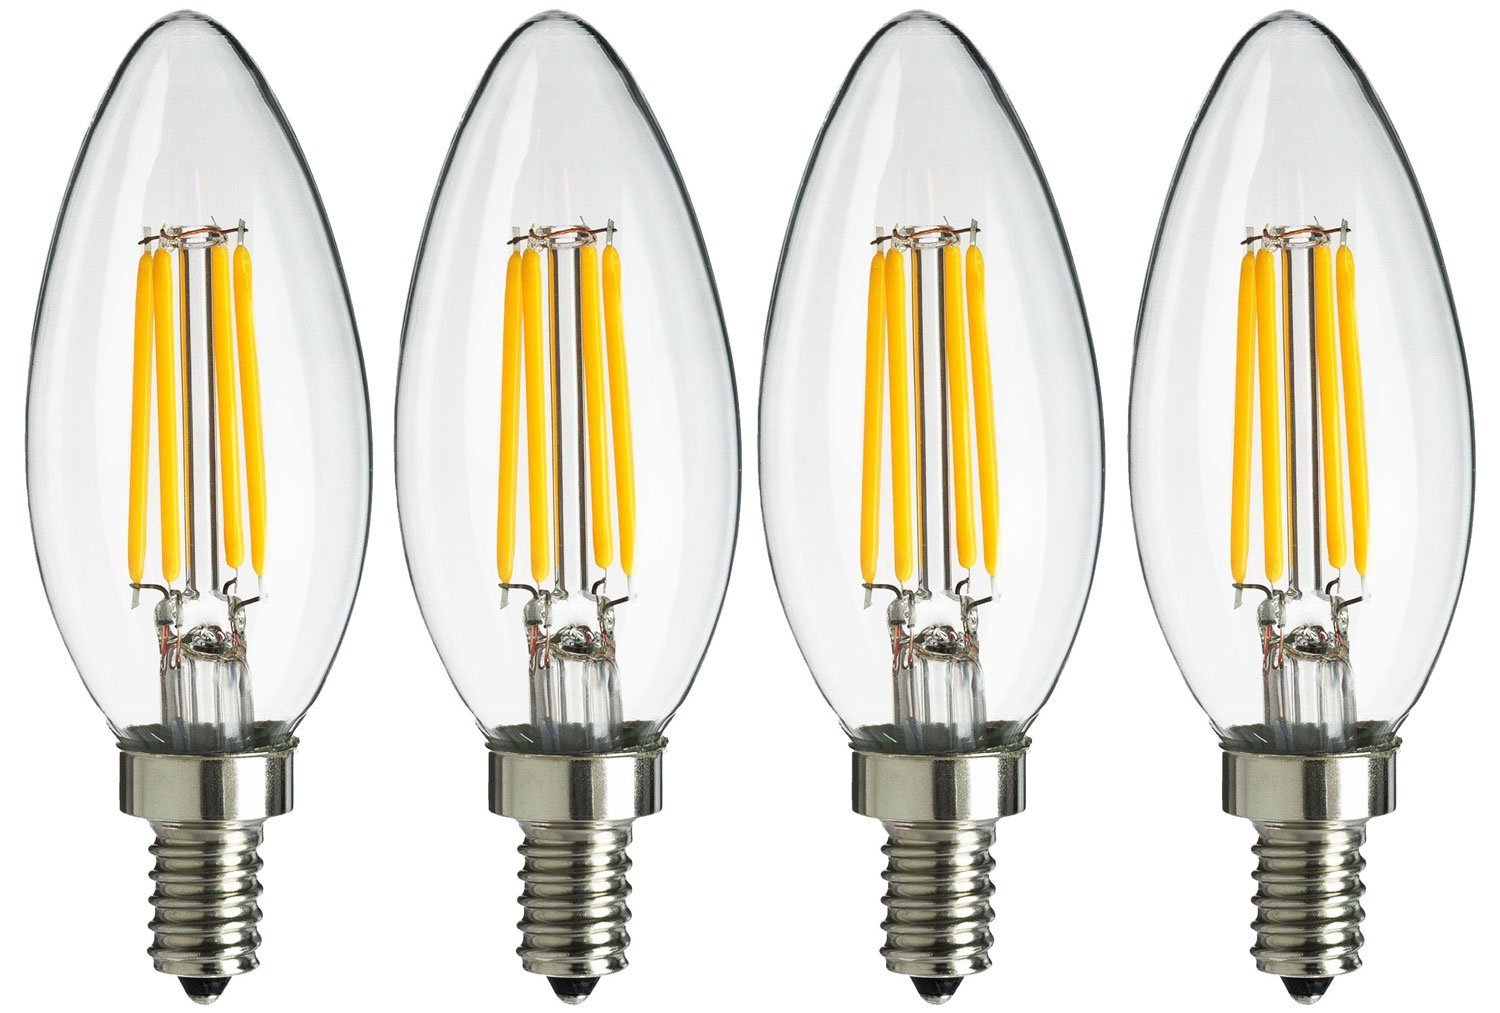 SUNWO LED B11 4W LED Filament Bulb Dimmable Equivalent To 40W Incandescent Bulbs 4 Pack SW-E12-4W-2700K 2700K Warm White E26 Candelabra Base LED Bulb